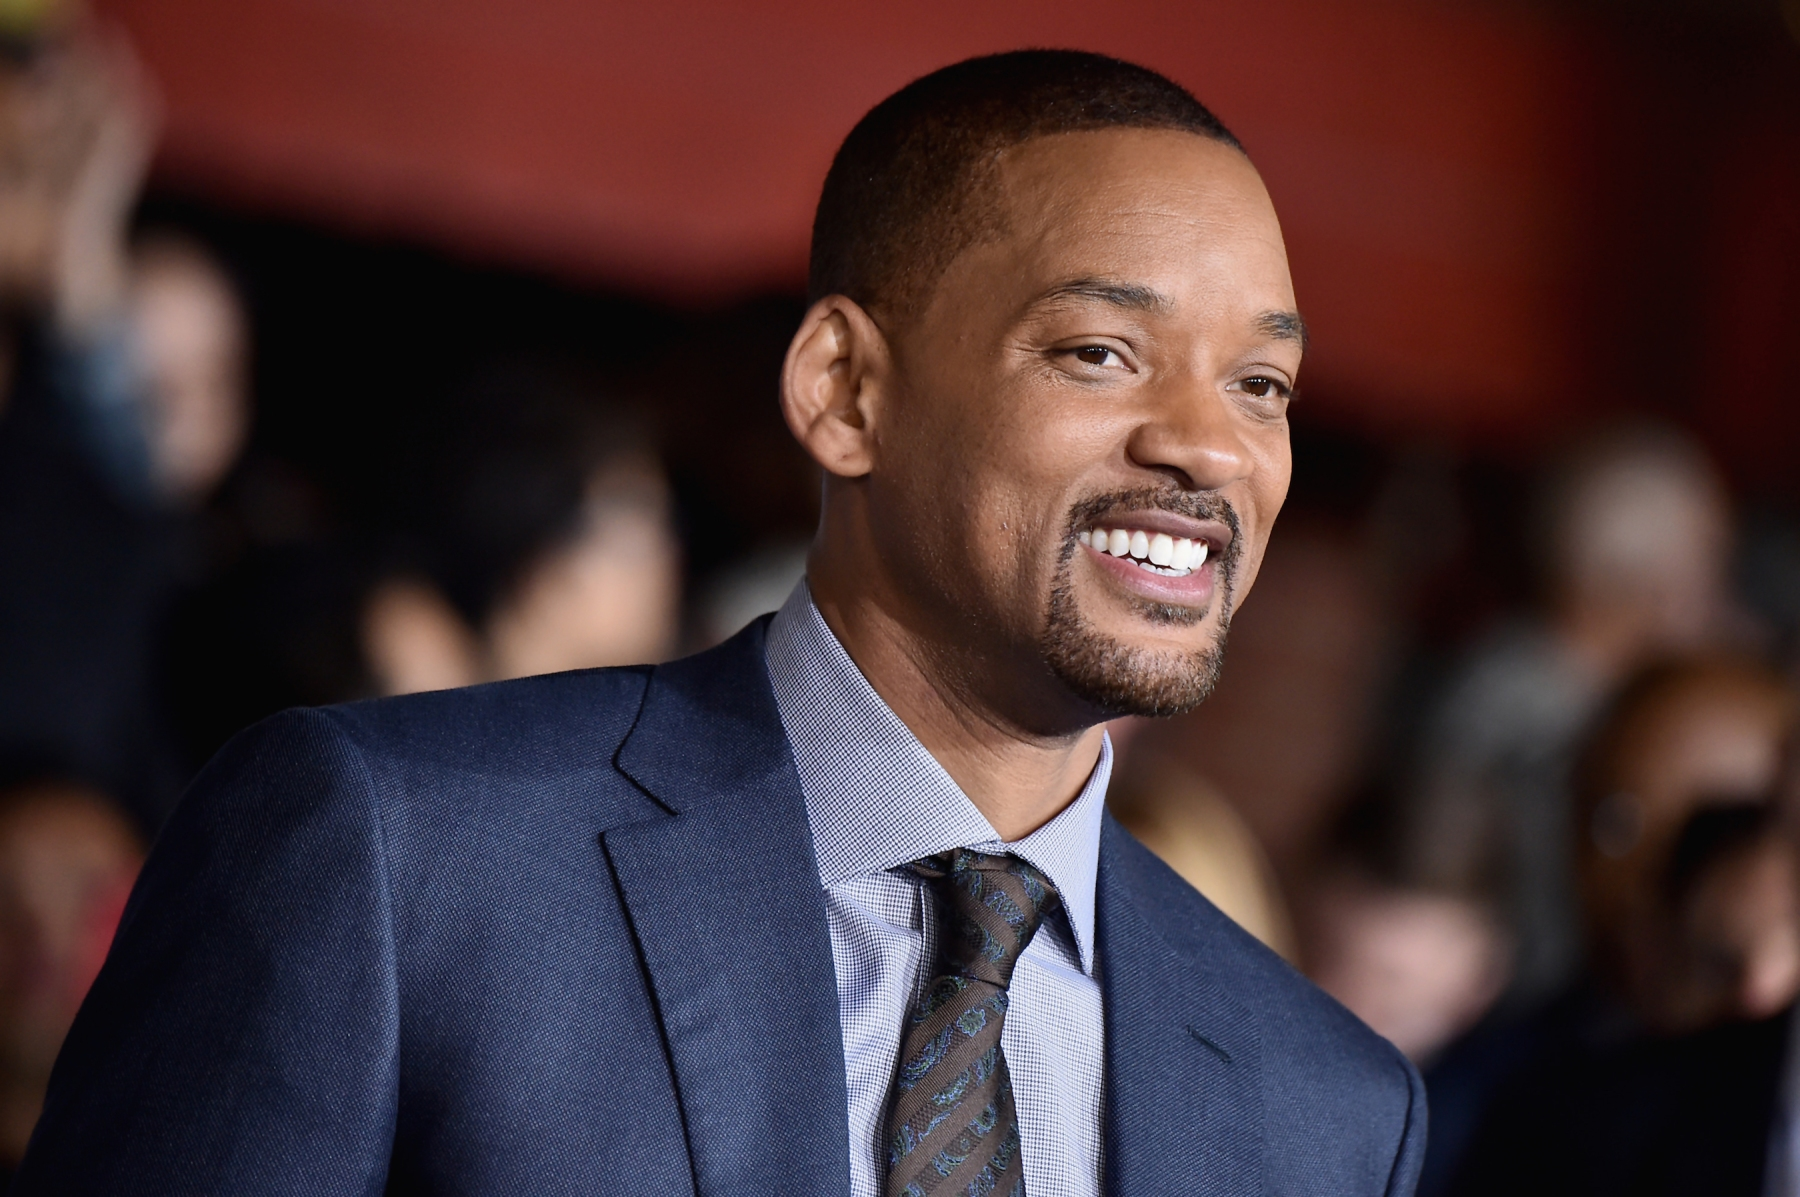 """Will Smith attends the Premiere Of Netflix's """"Bright"""" at Regency Village Theatre on December 13, 2017 in Westwood, California. Smith will star in Disney's live-action """"Aladdin,"""" which recently dropped its first trailer. (Photo by Frazer Harrison/Getty Images)"""